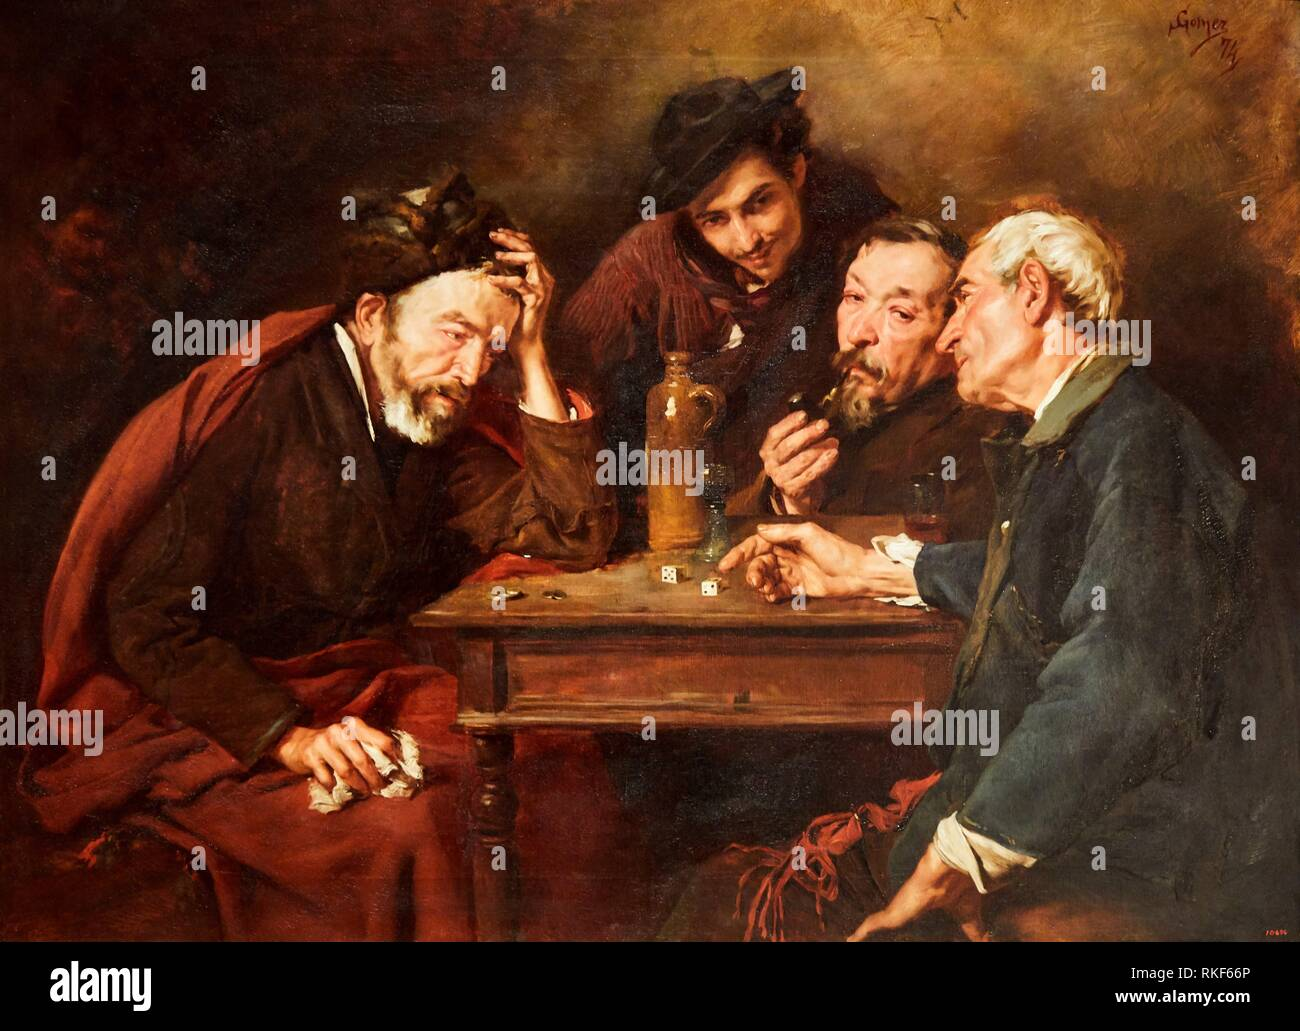 '''The Dice Players'', 1874, Simó Gómez, National Museum of Catalan Art, Museu Nacional d Art de Catalunya, MNAC, Barcelona, Spain, Europe - Stock Image